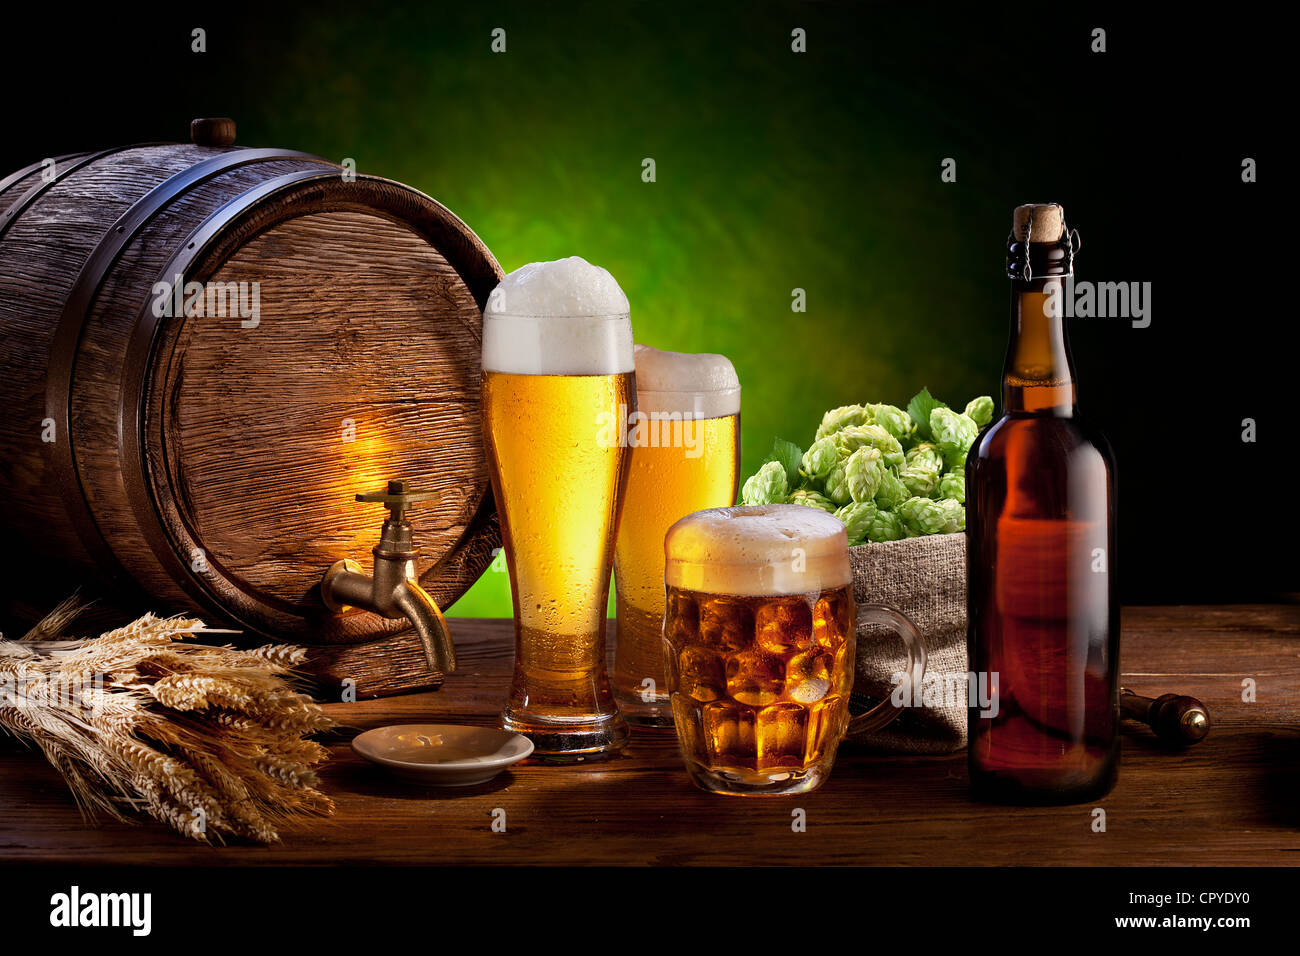 Beer barrel with beer glasses on a wooden table. The dark green background. - Stock Image